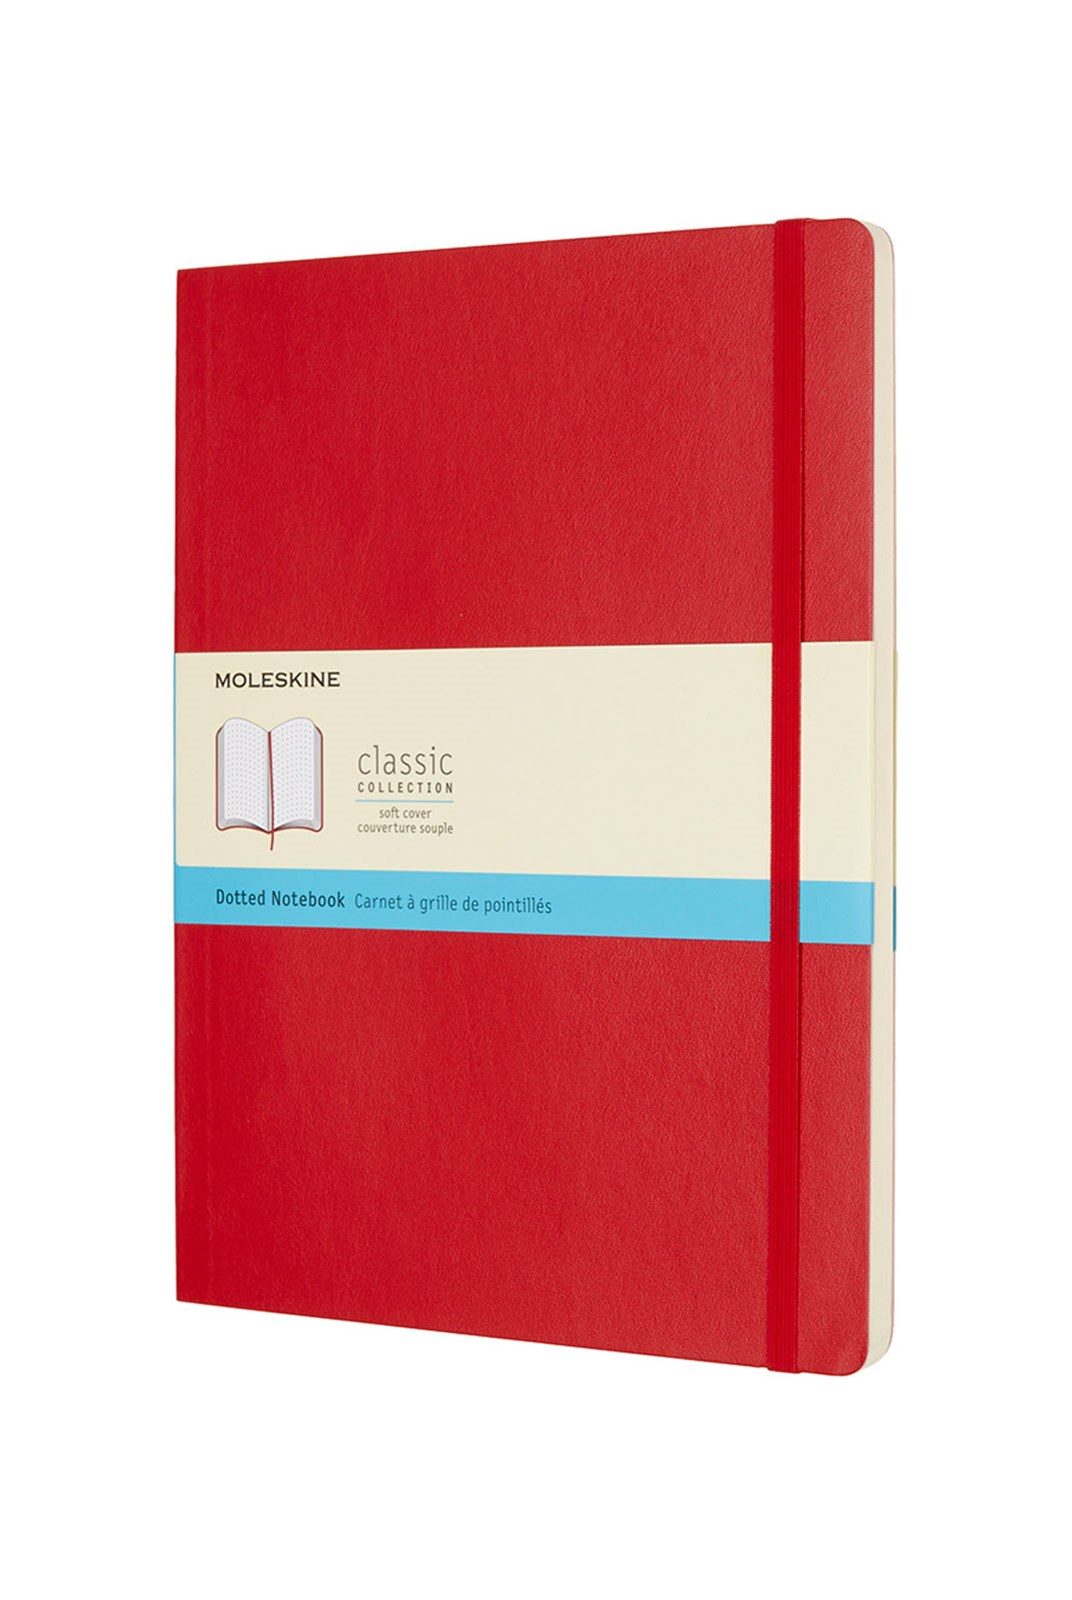 Moleskine - Classic Soft Cover Notebook - Dot Grid - Extra Large - Scarlet Red